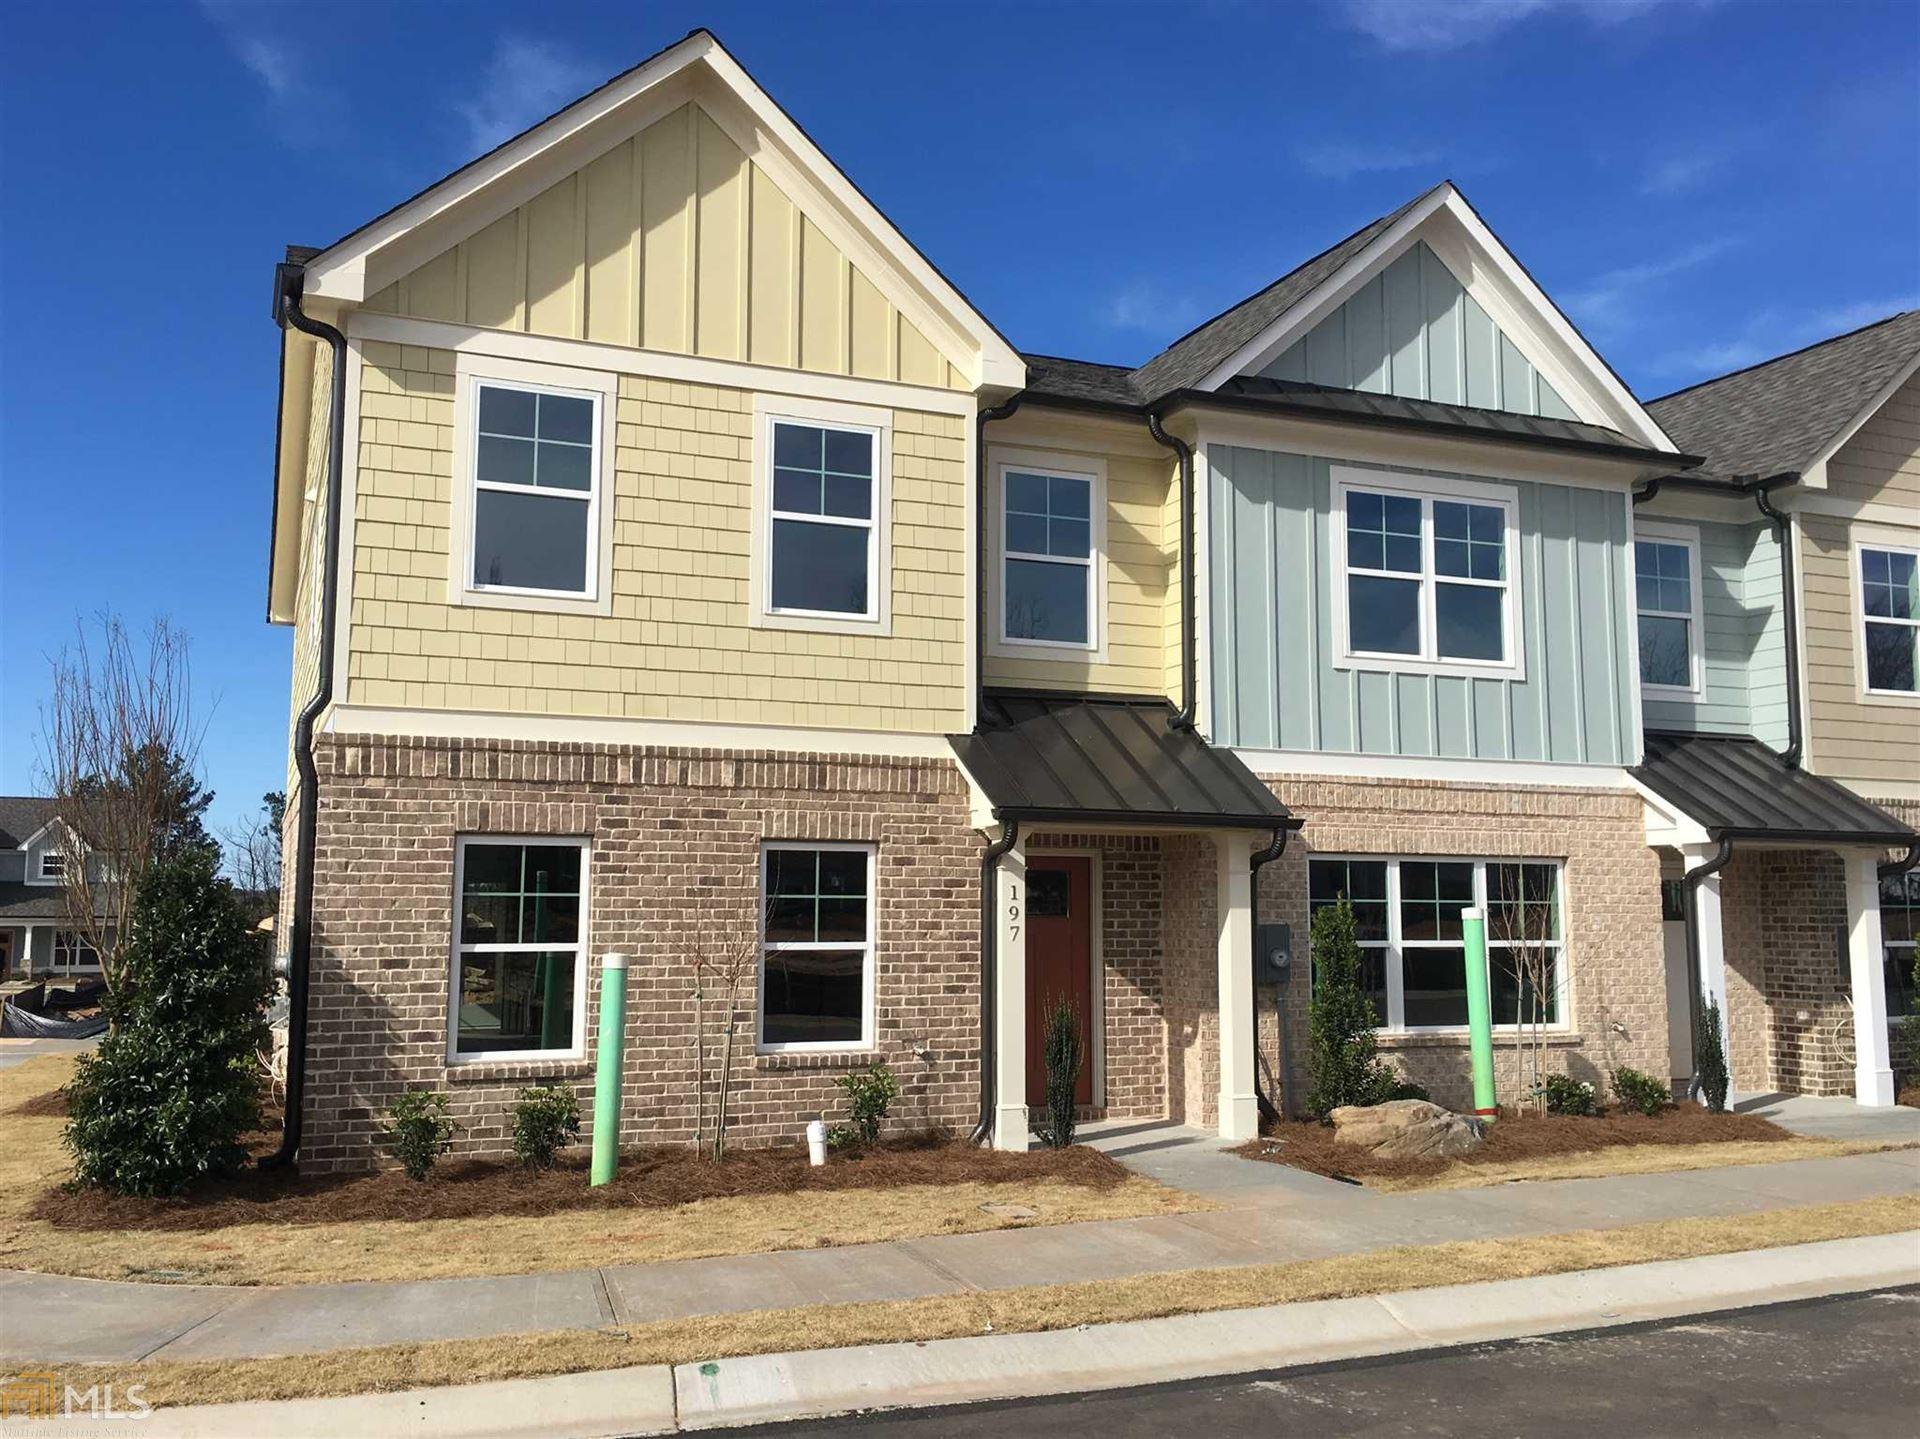 298 Perry Point Run, Lawrenceville, GA 30046 - MLS#: 8719422